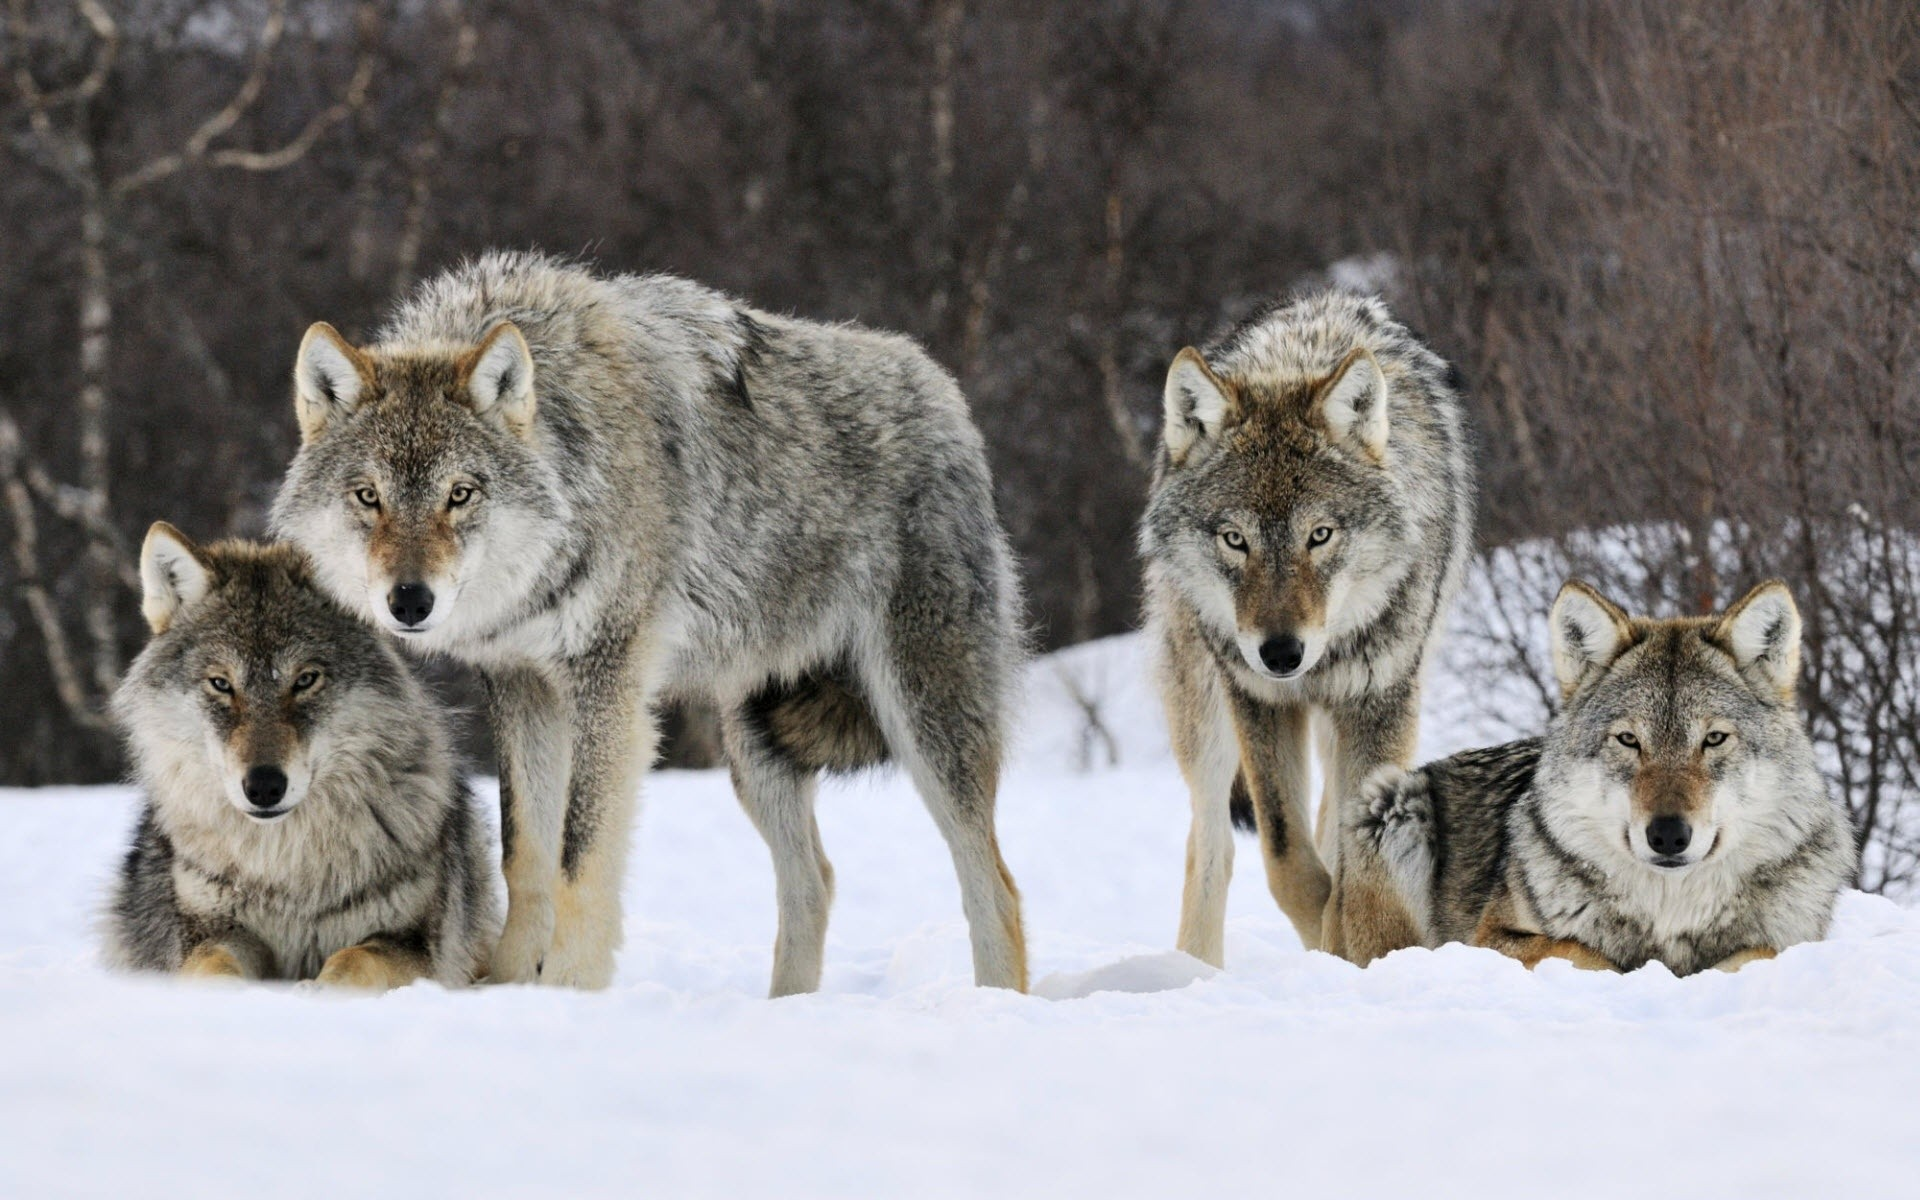 A pack of wolves in the winter woods